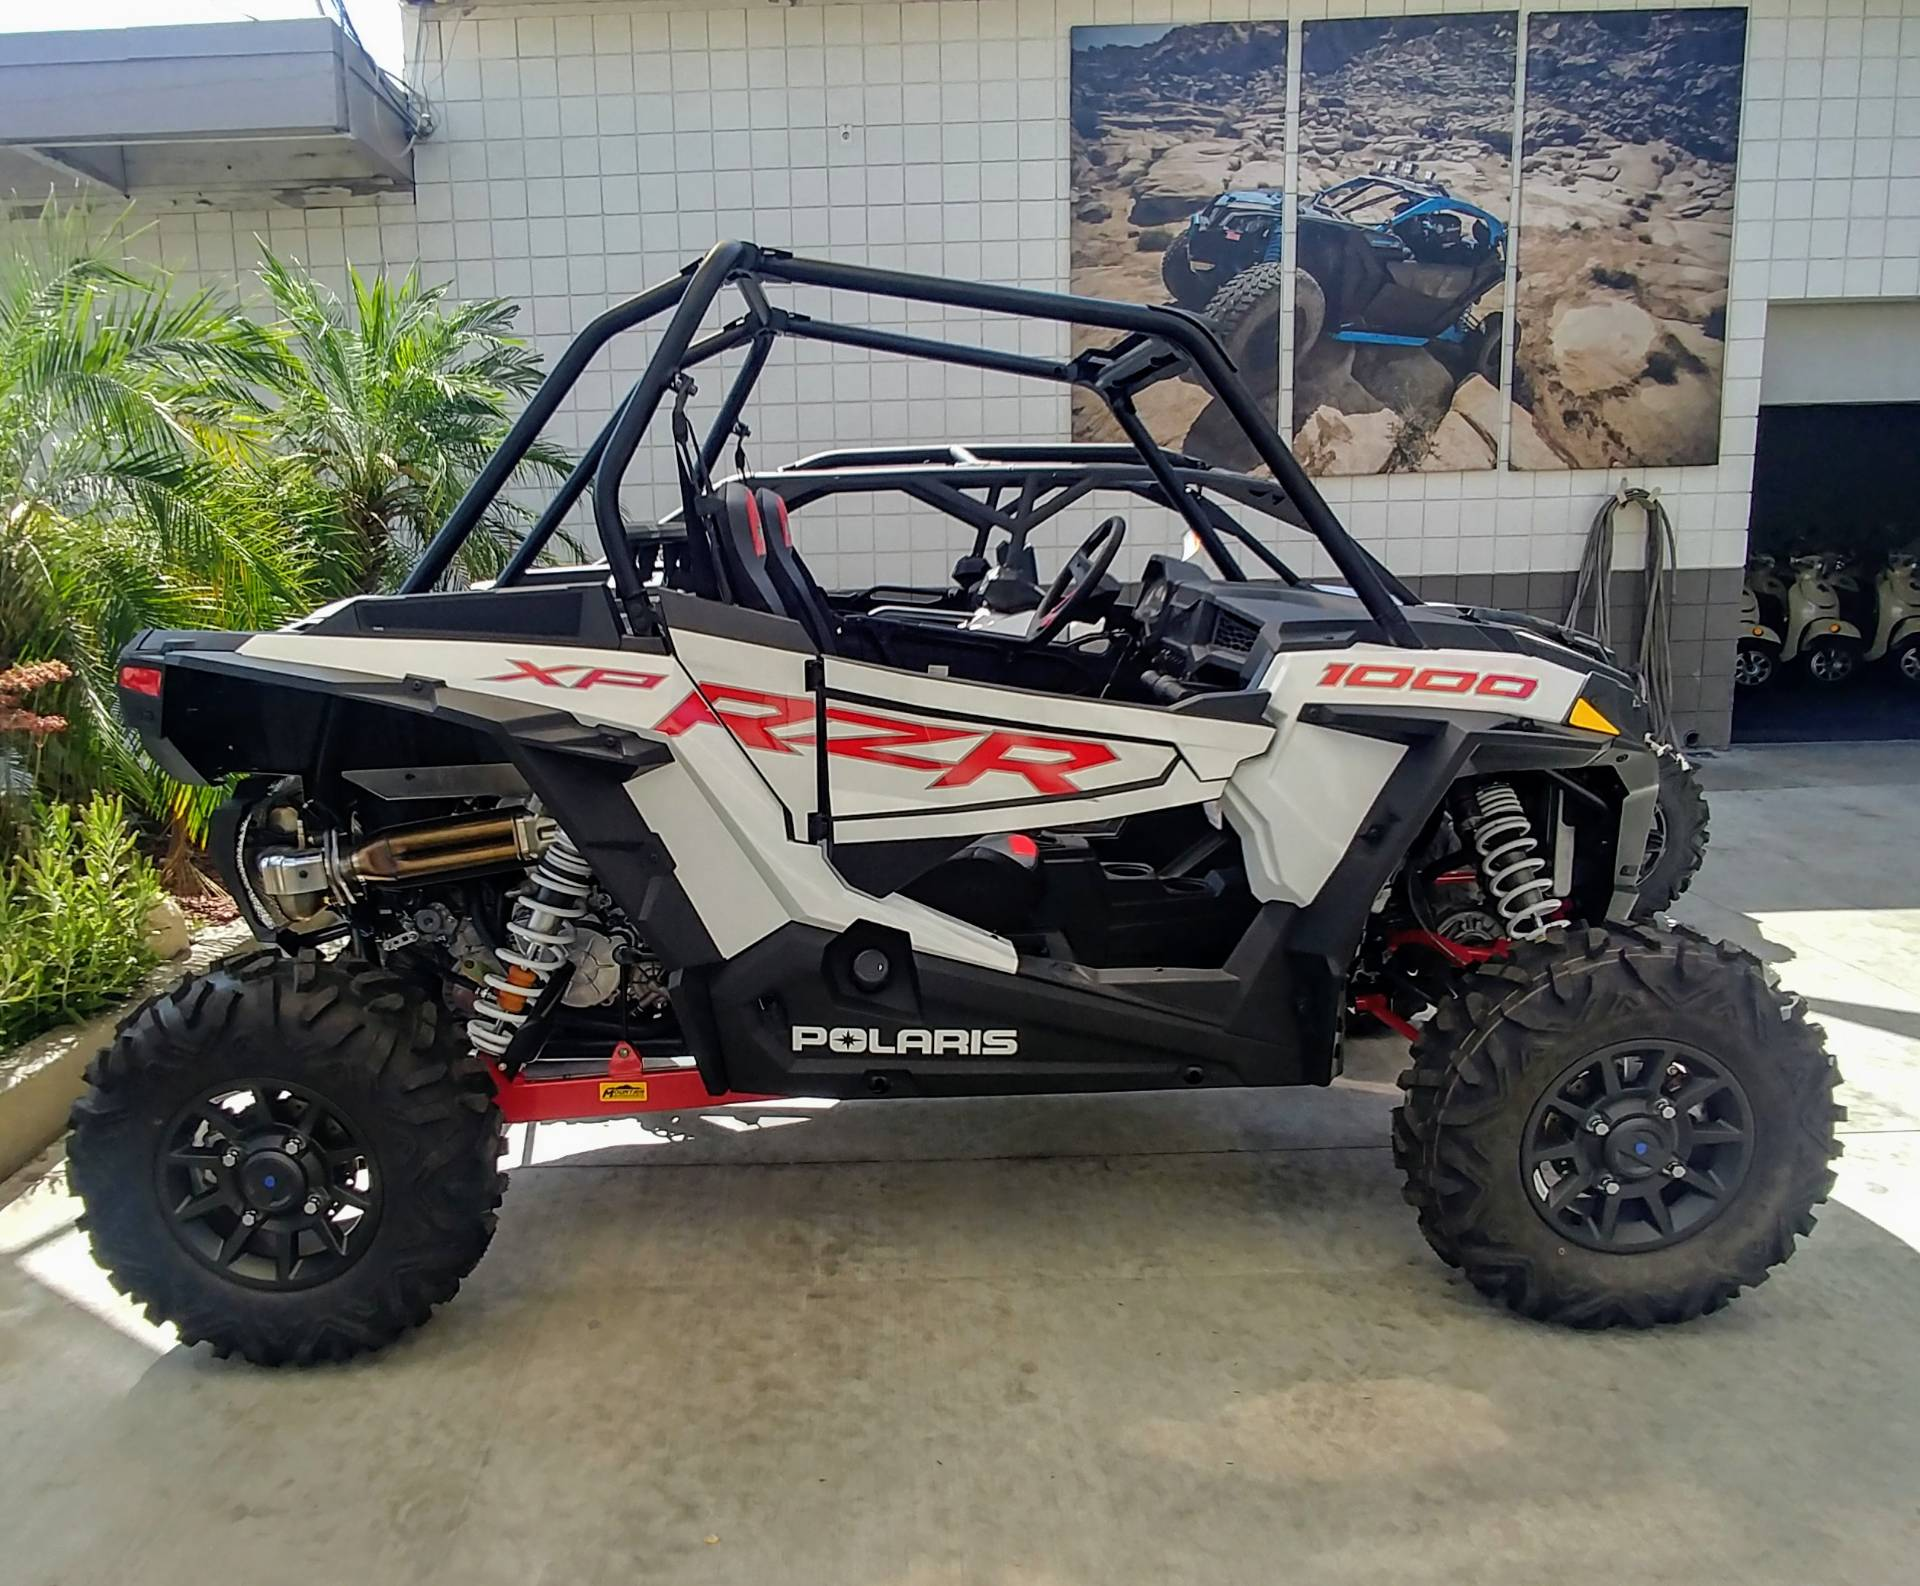 2020 Polaris RZR XP 1000 in Ontario, California - Photo 3